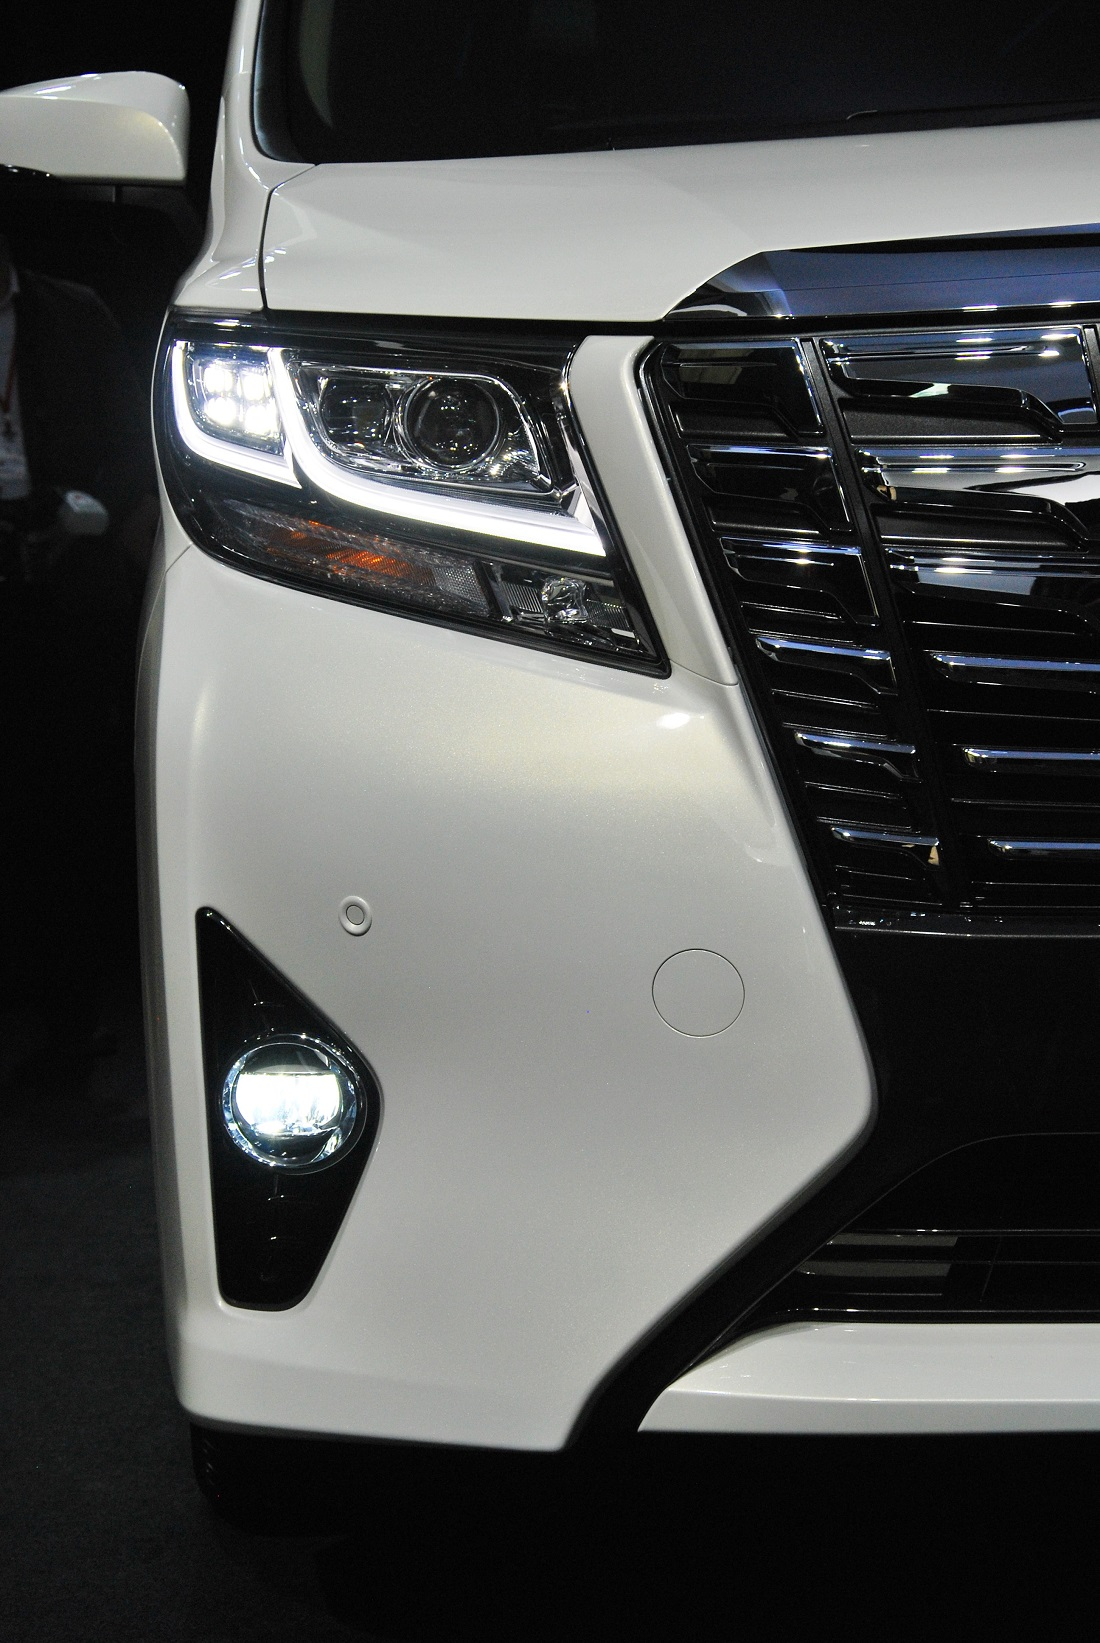 Made-For-Malaysia Toyota Alphard & Vellfire MPVs Launched - Autoworld.com.my